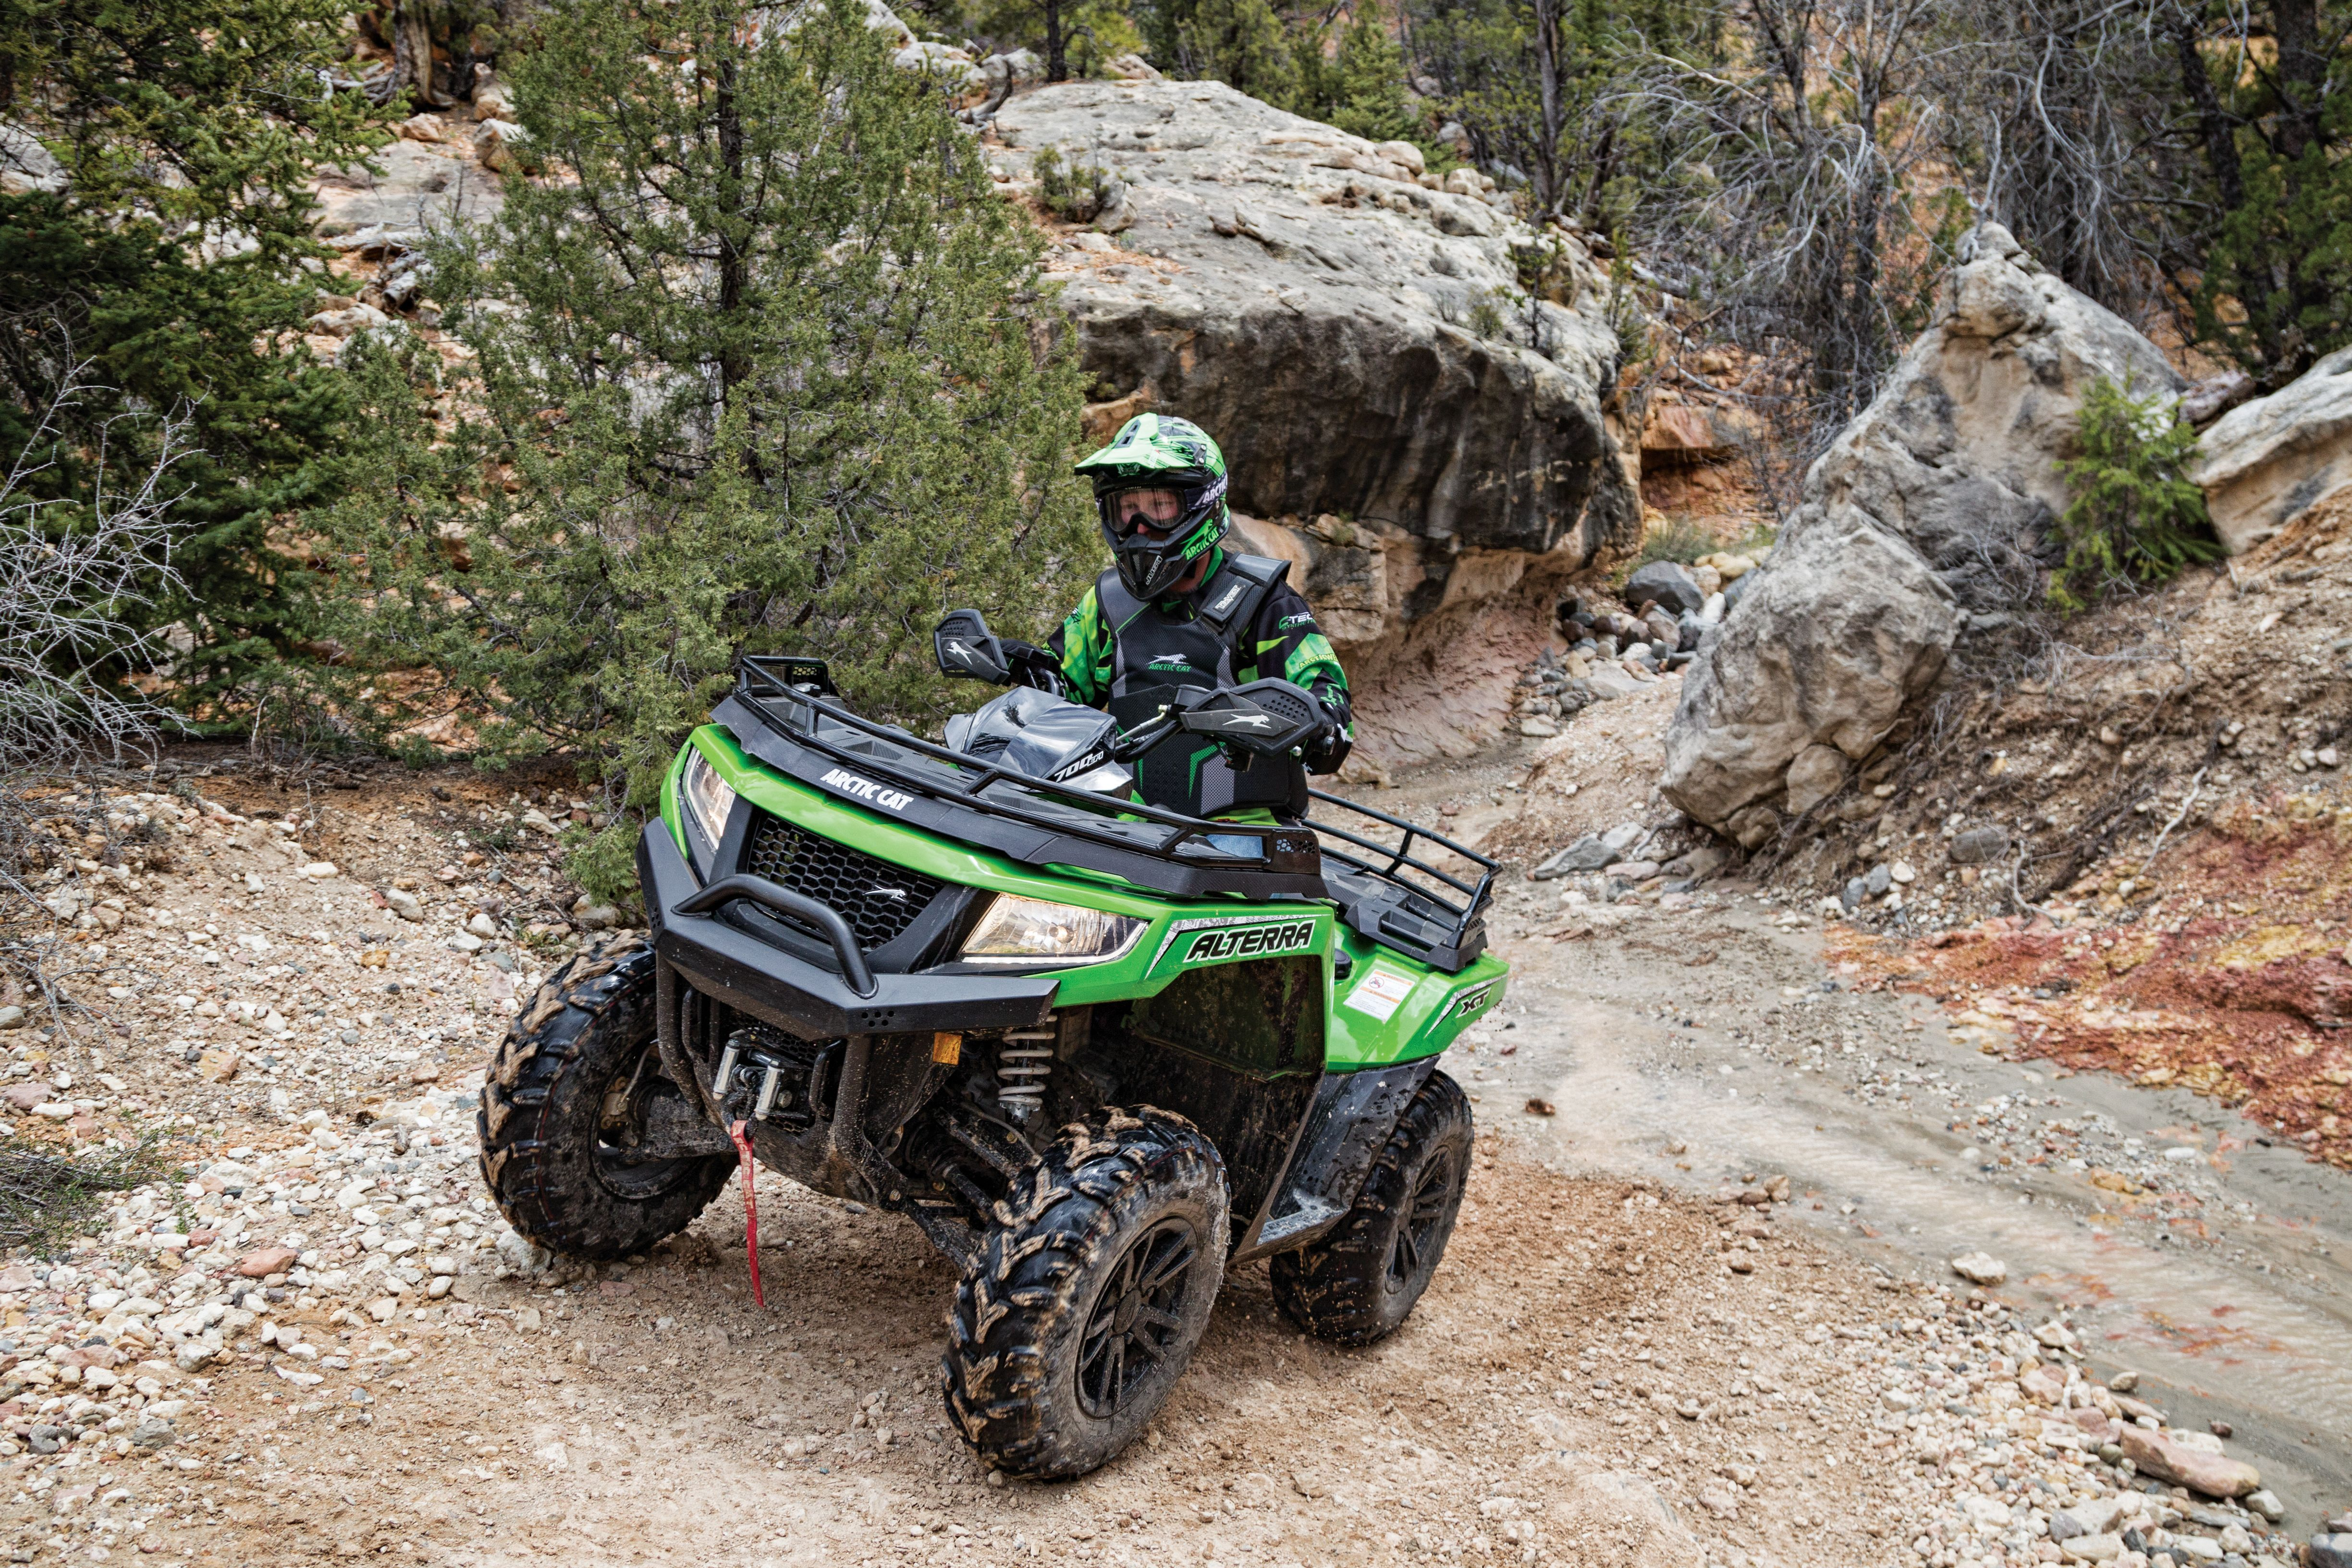 Arctic Cat 700 Atv Wiring Gauge Electrical Diagrams Textron Inc Announces Acquisition Of A Leading Crew